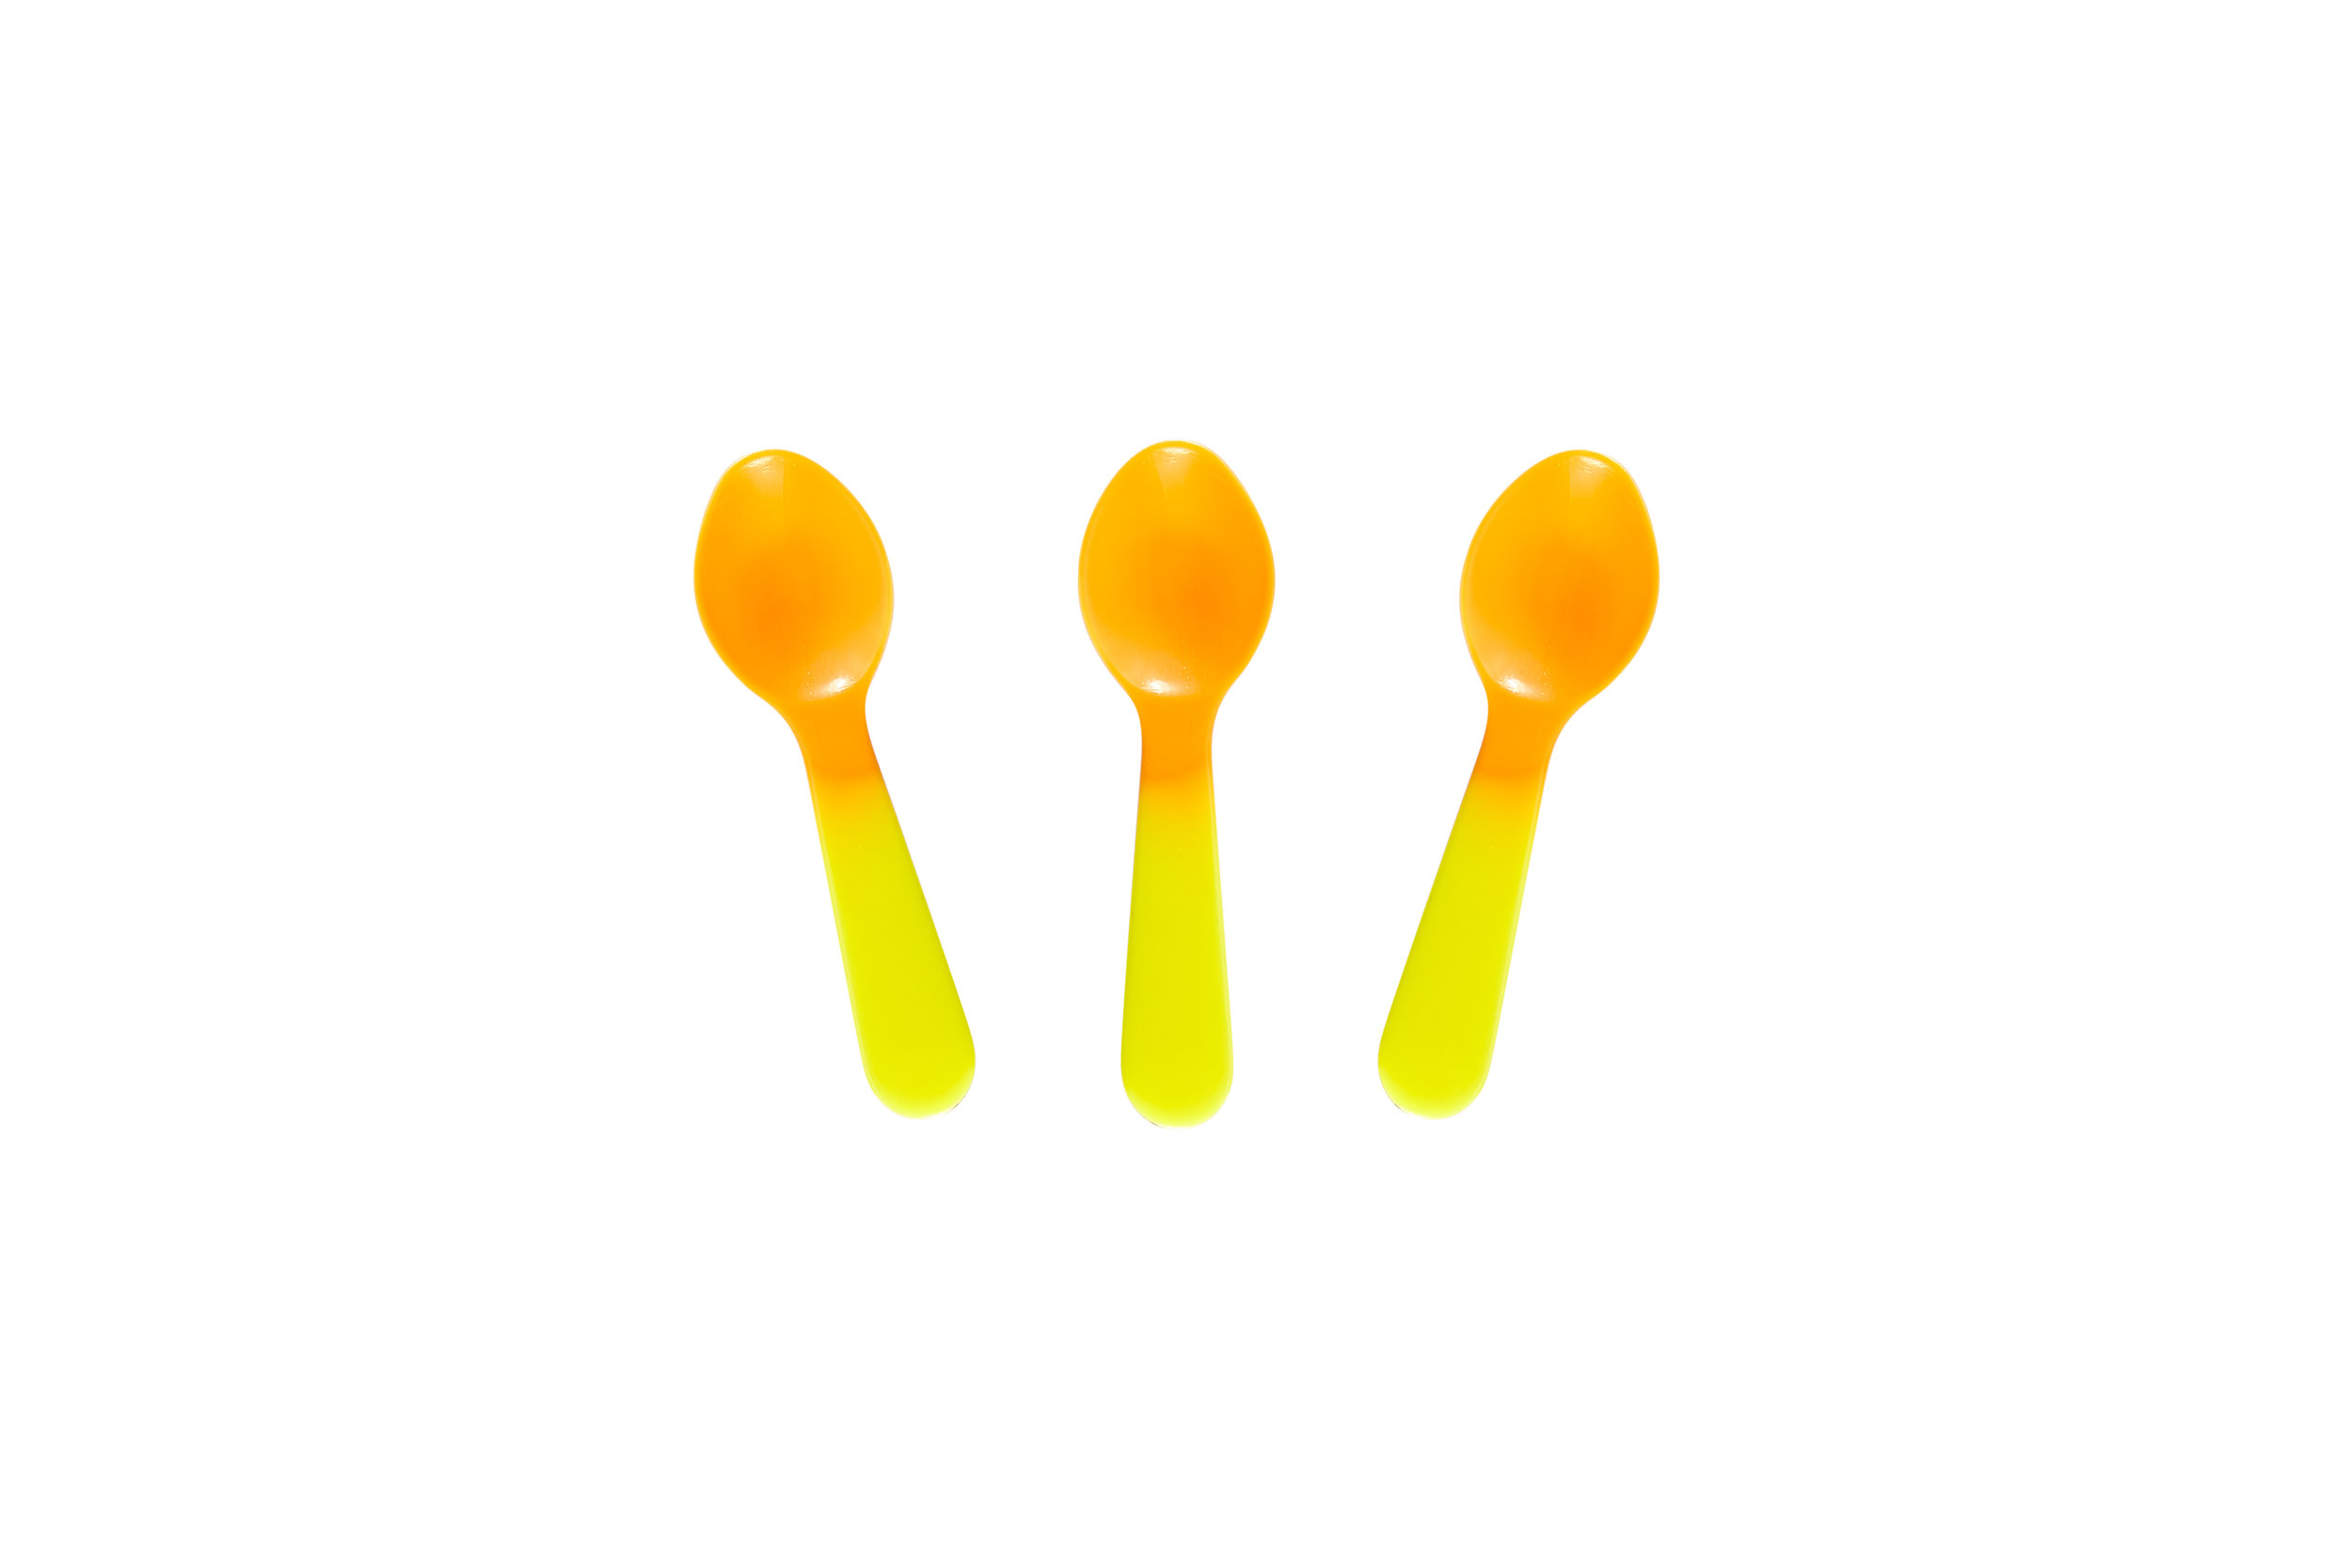 Color Changing Tasting Spoons Yellow to Orange